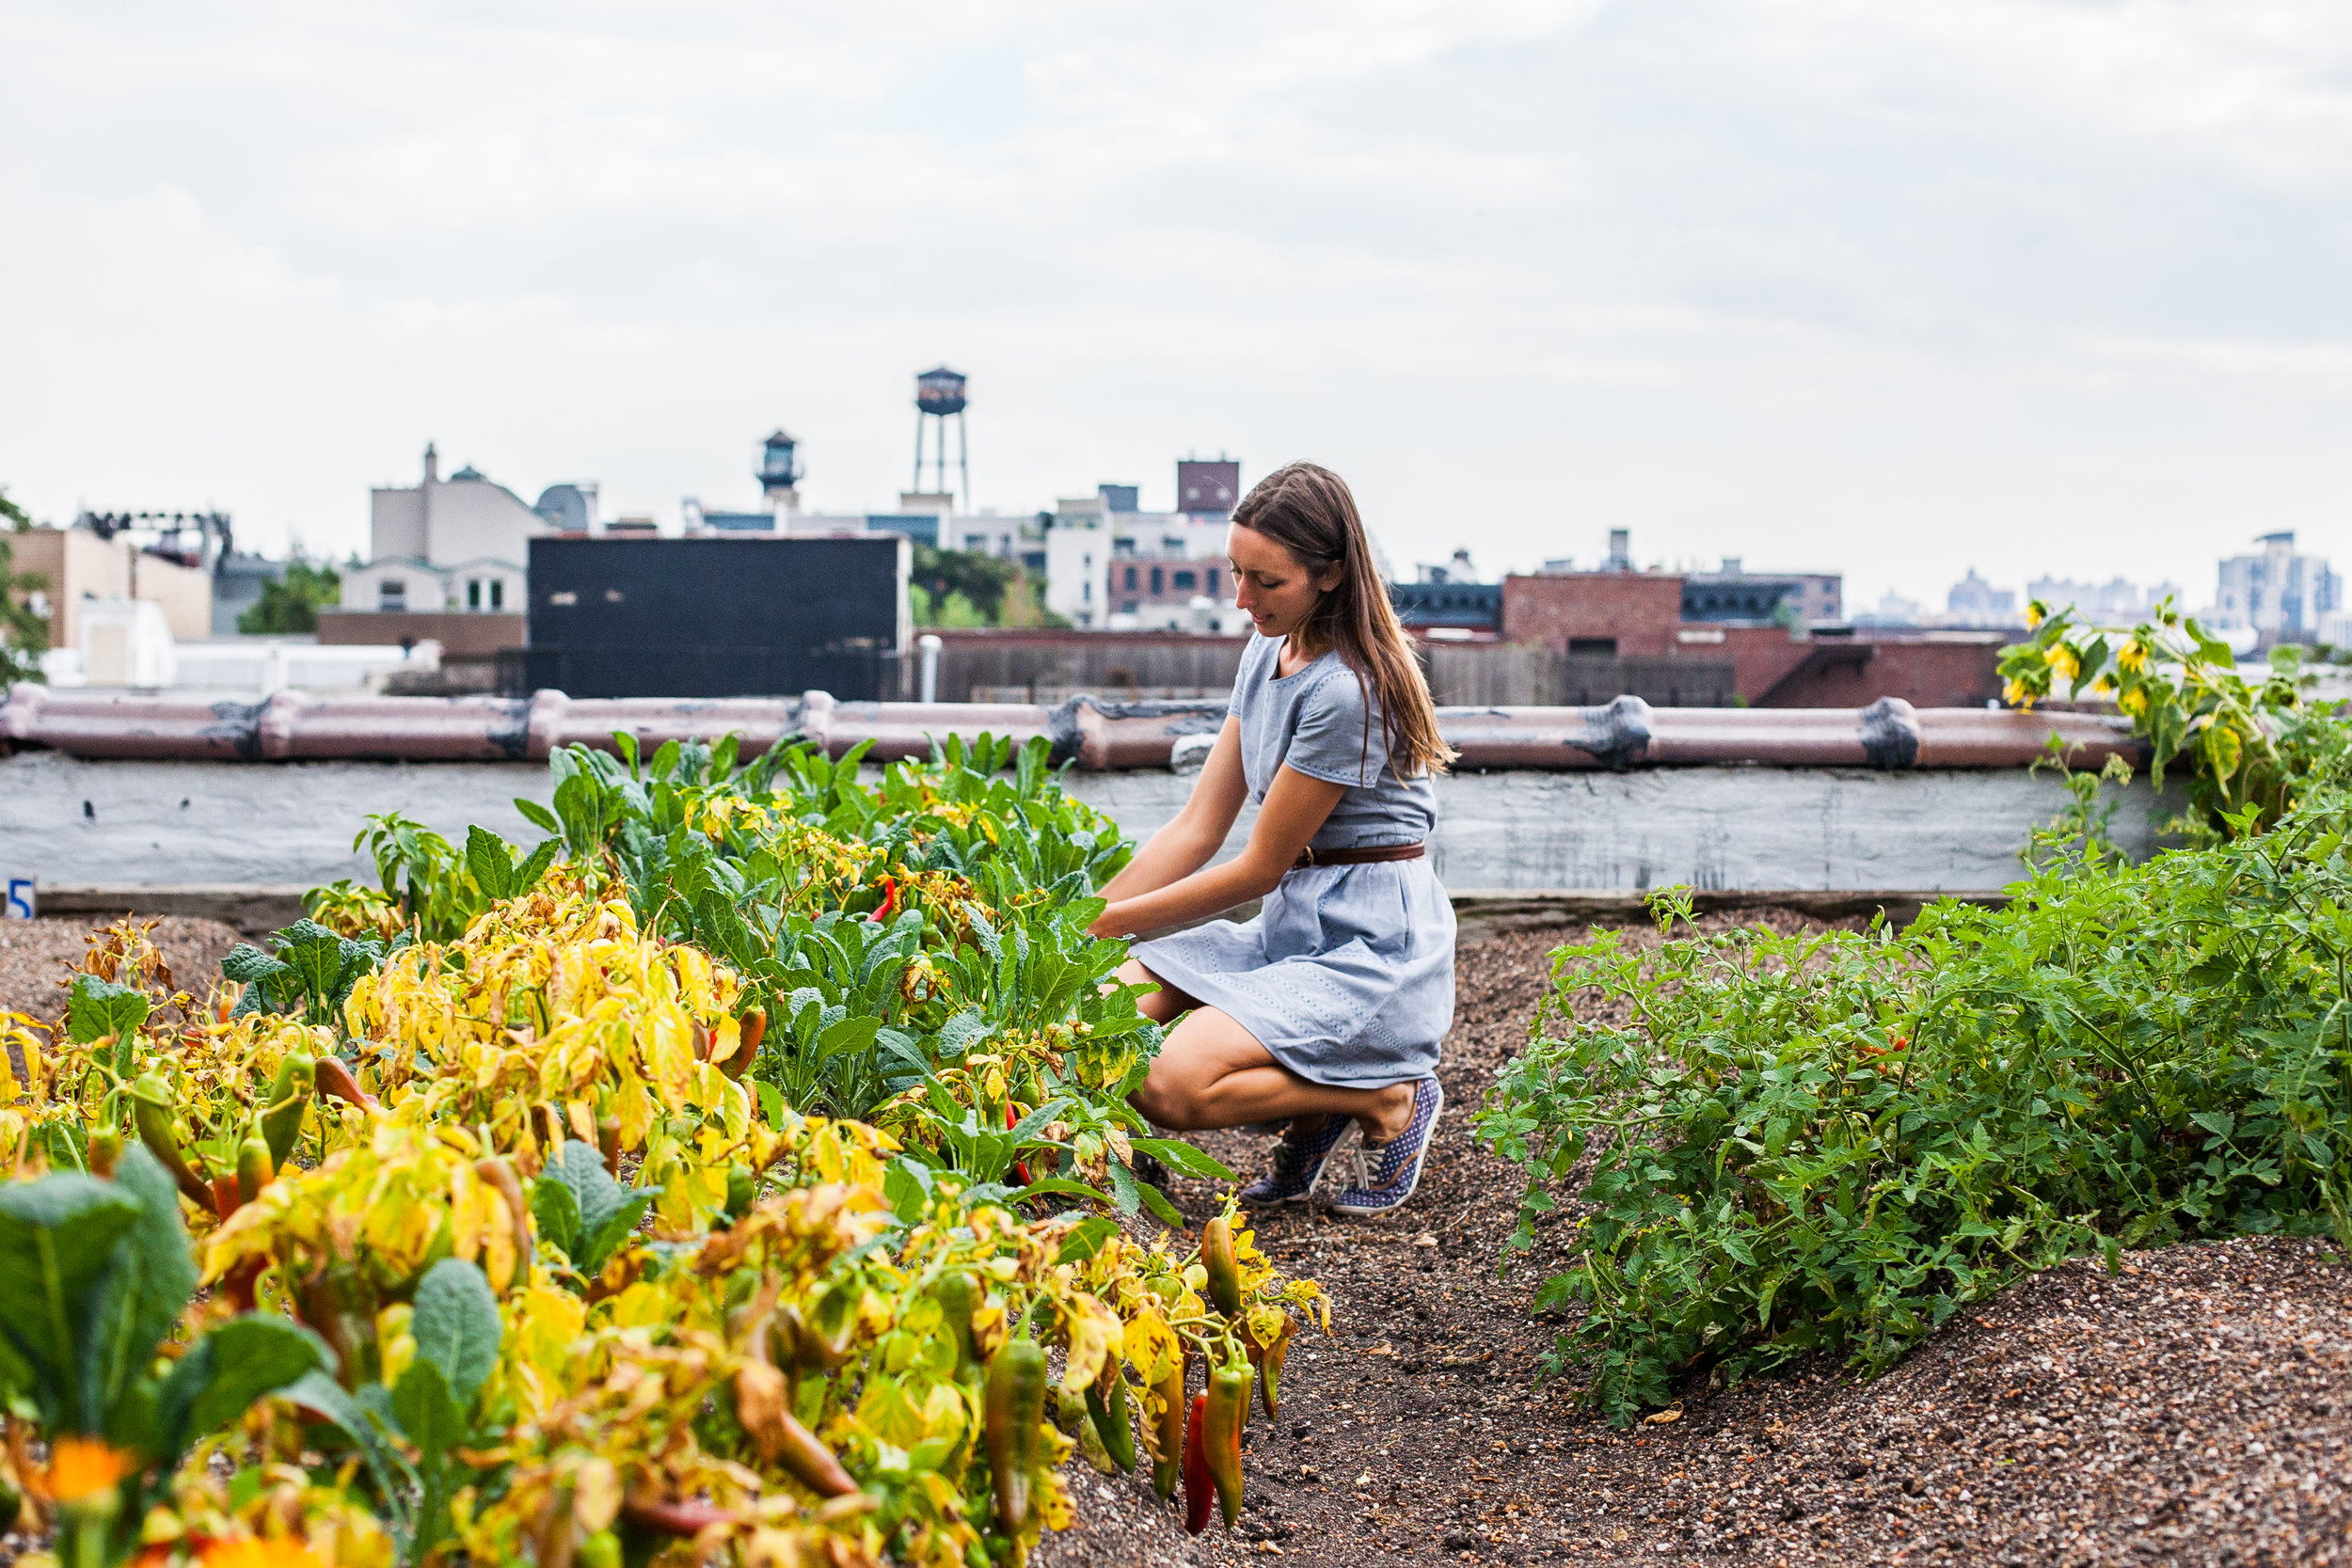 Annie Novak, founder of Eagle Street Rooftop Farm